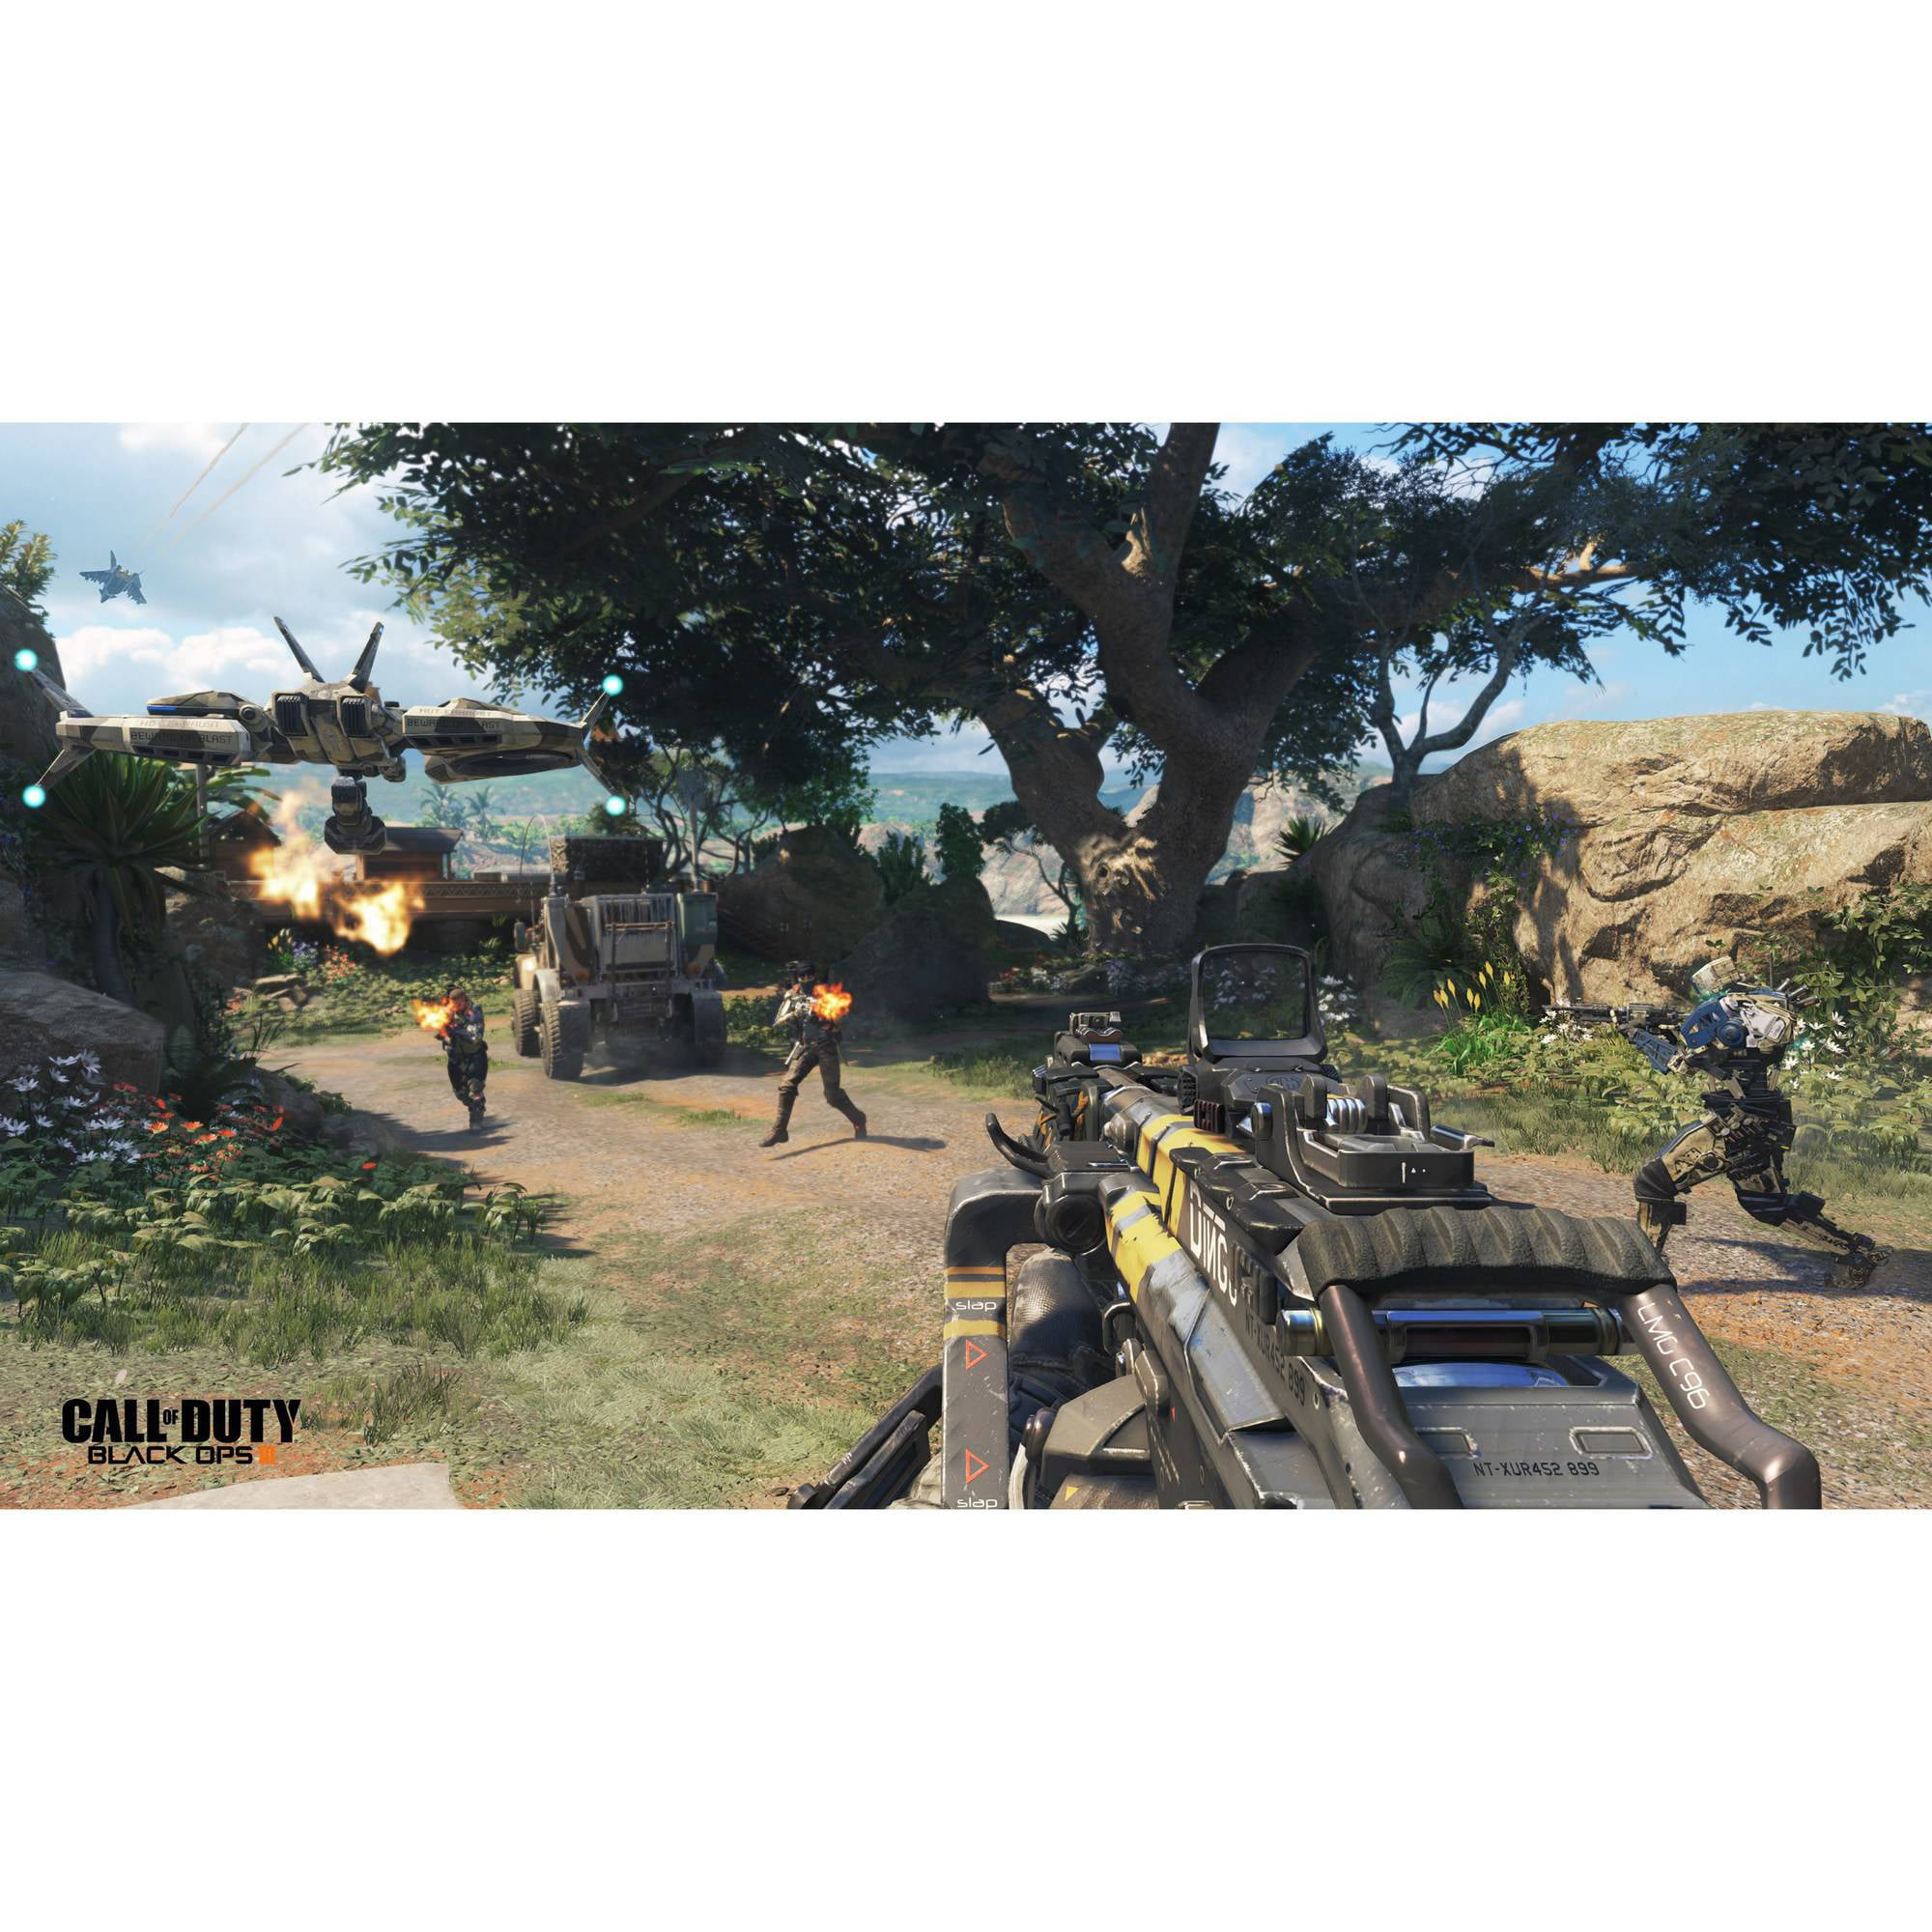 Call Of Duty Black Ops Iii Activision Playstation 4 047875874589 Walmart Com Walmart Com